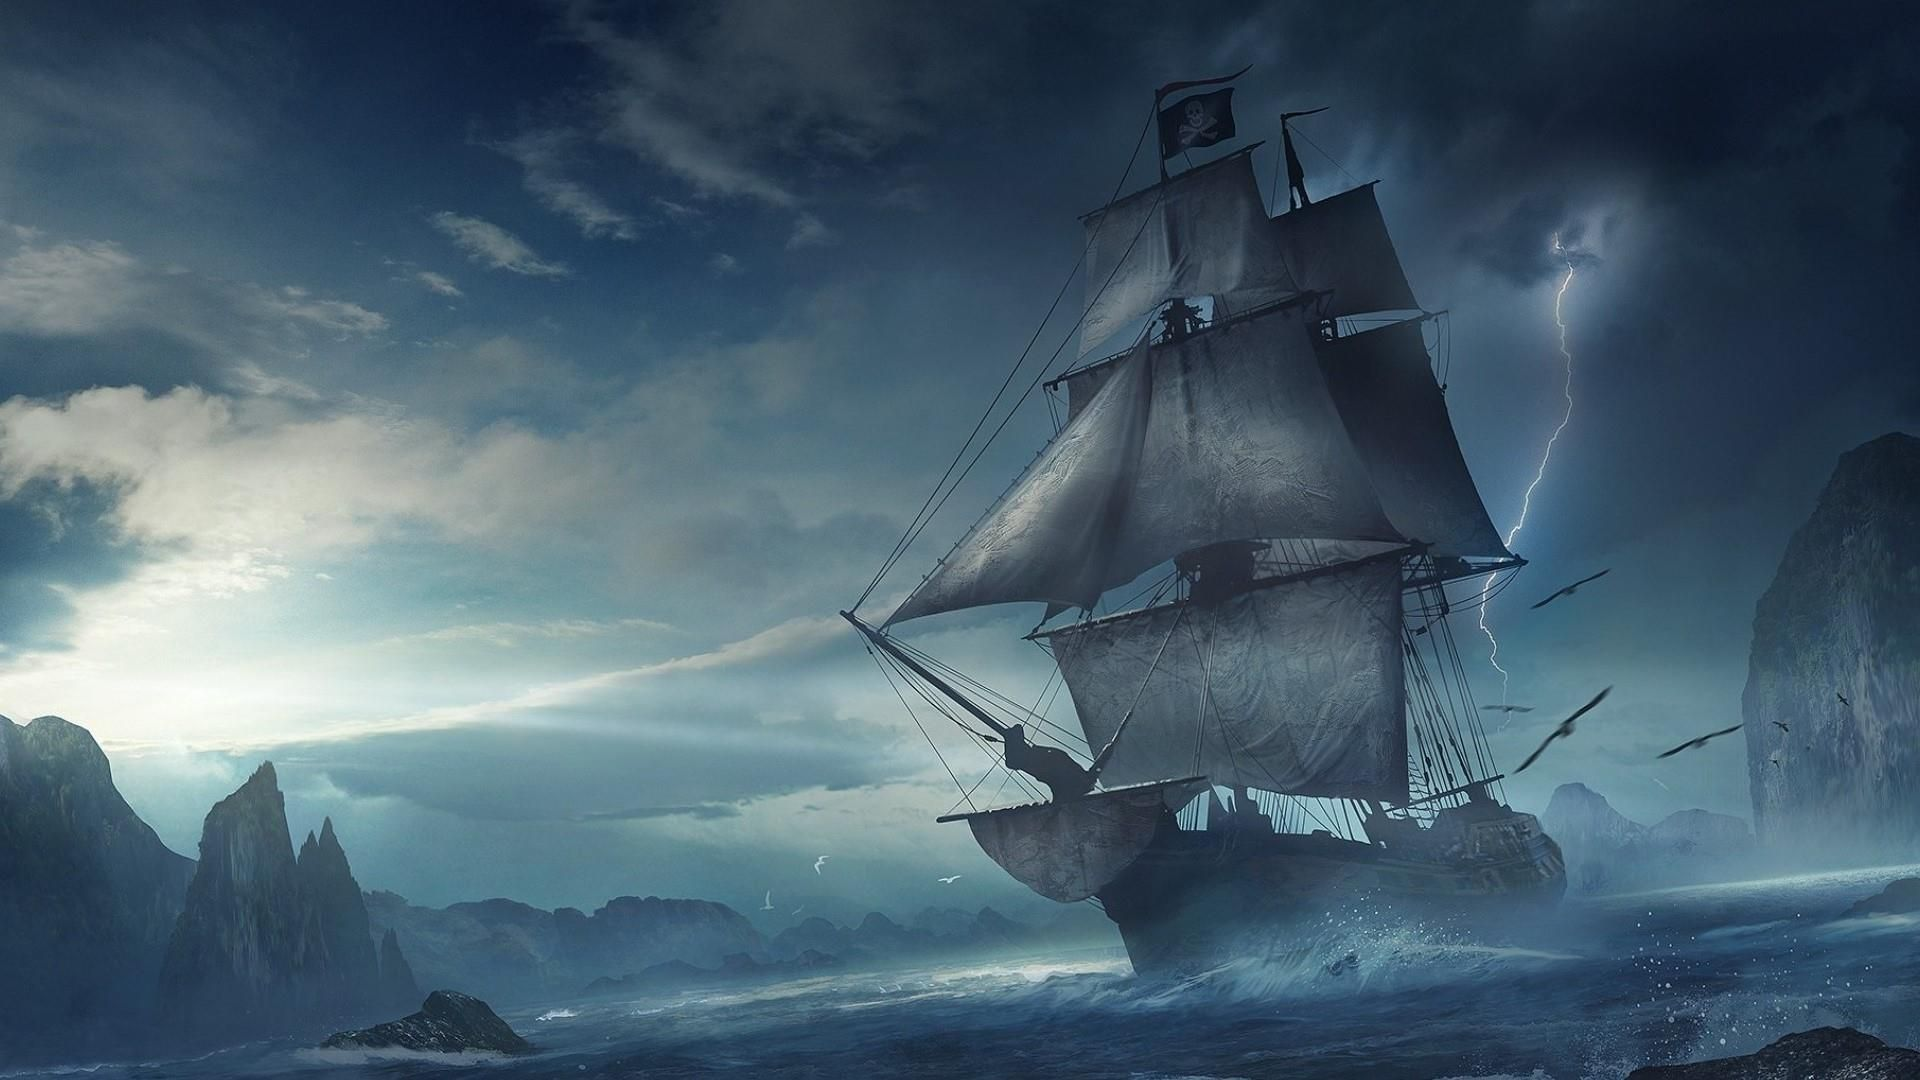 Sailing Ships Hd Wallpaper 1920x1080 Id 51976 With Images